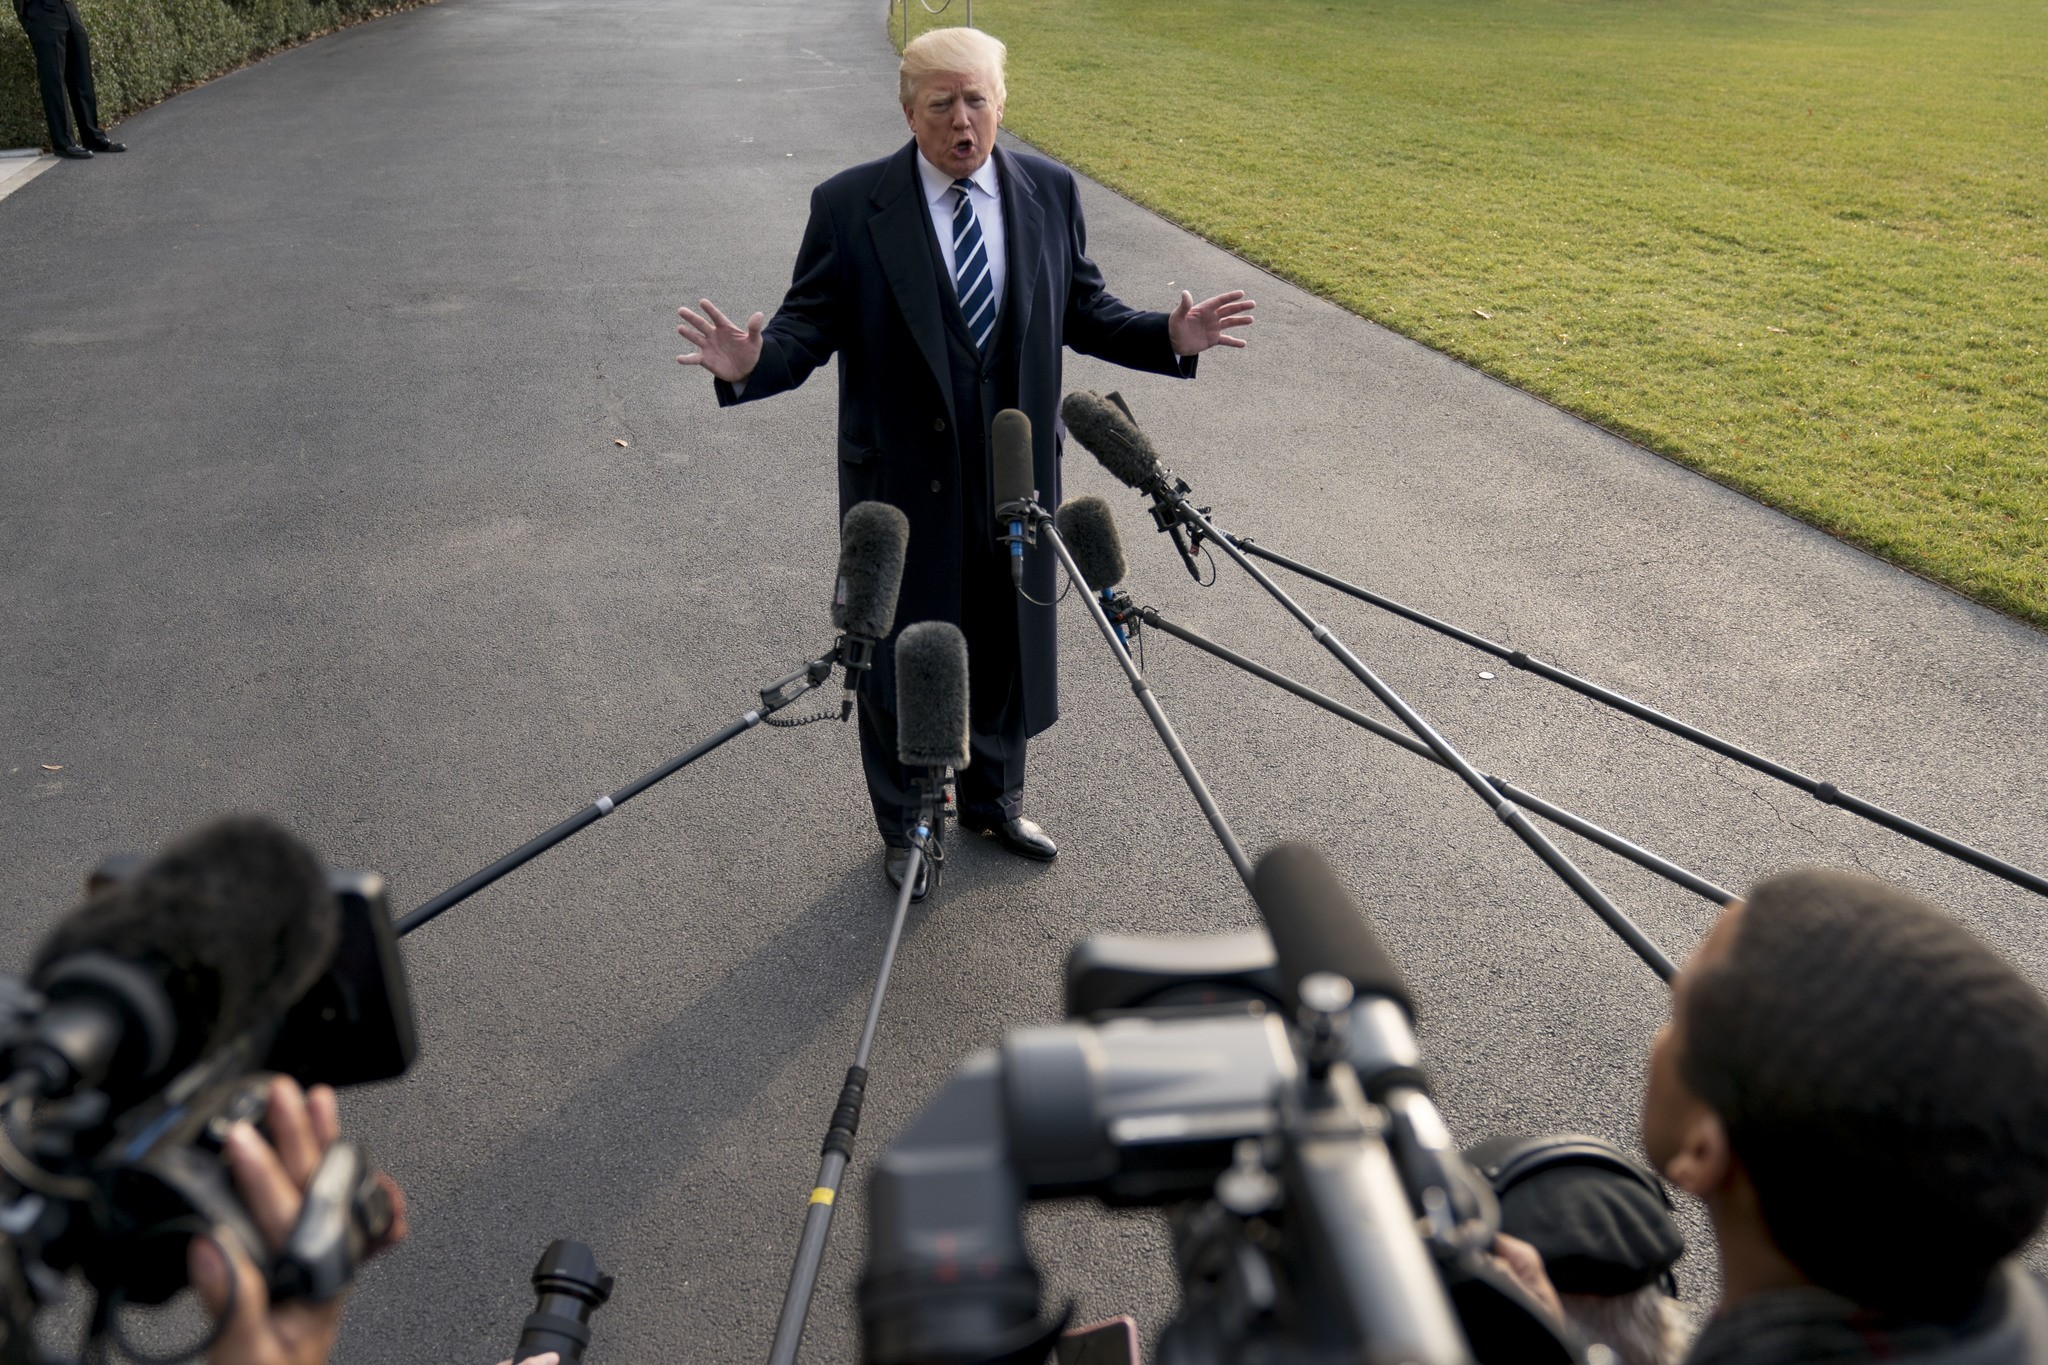 President Donald Trump speaks to members of the media before boarding Marine One at the White House, Saturday, Dec. 2, 2017, in Washington.(AP Photo)